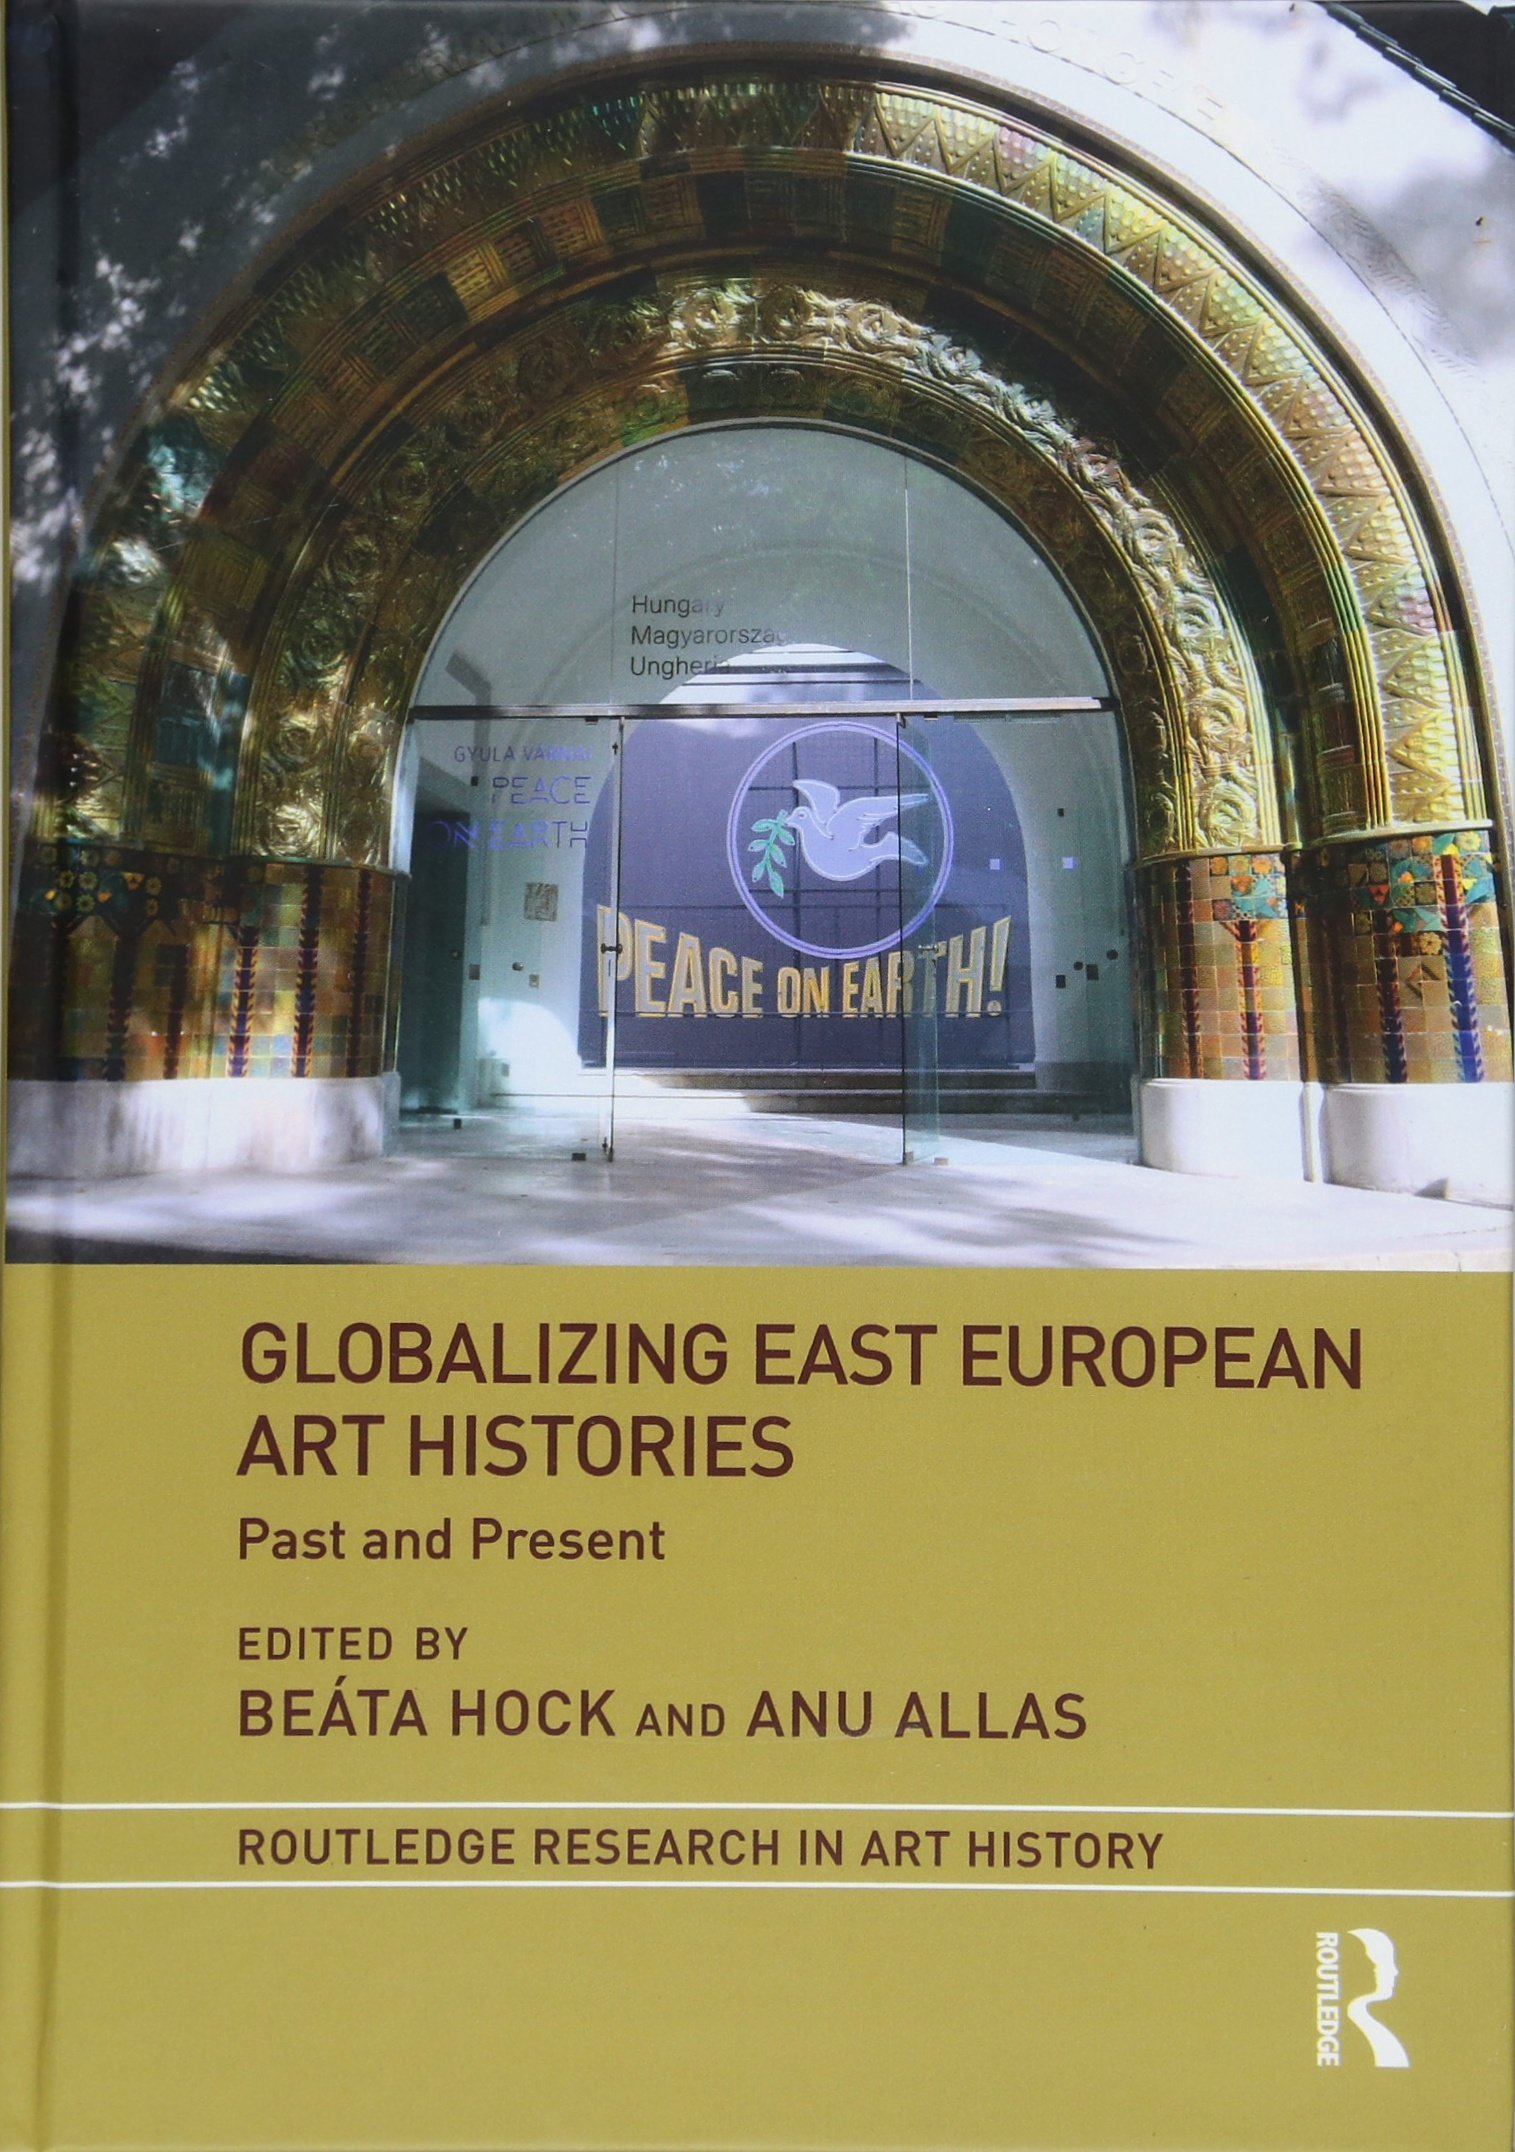 Globalizing East European Art Histories  Past And Present  Routledge Research In Art History